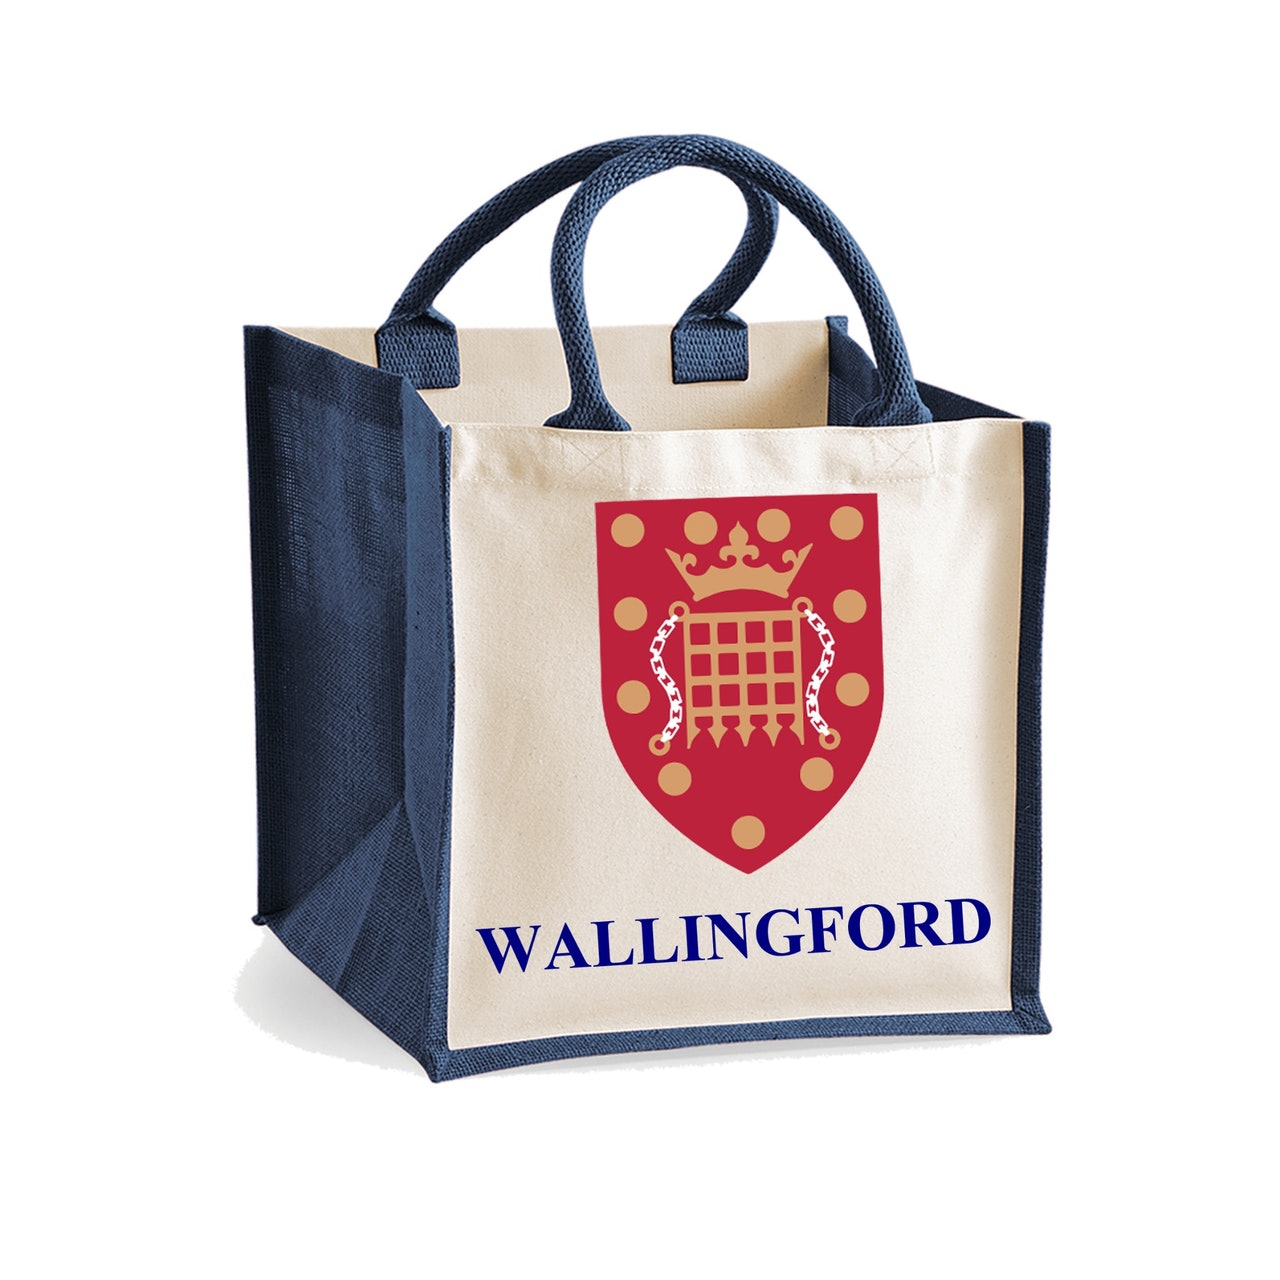 The Wallingford Range - Pre Order Now!!!